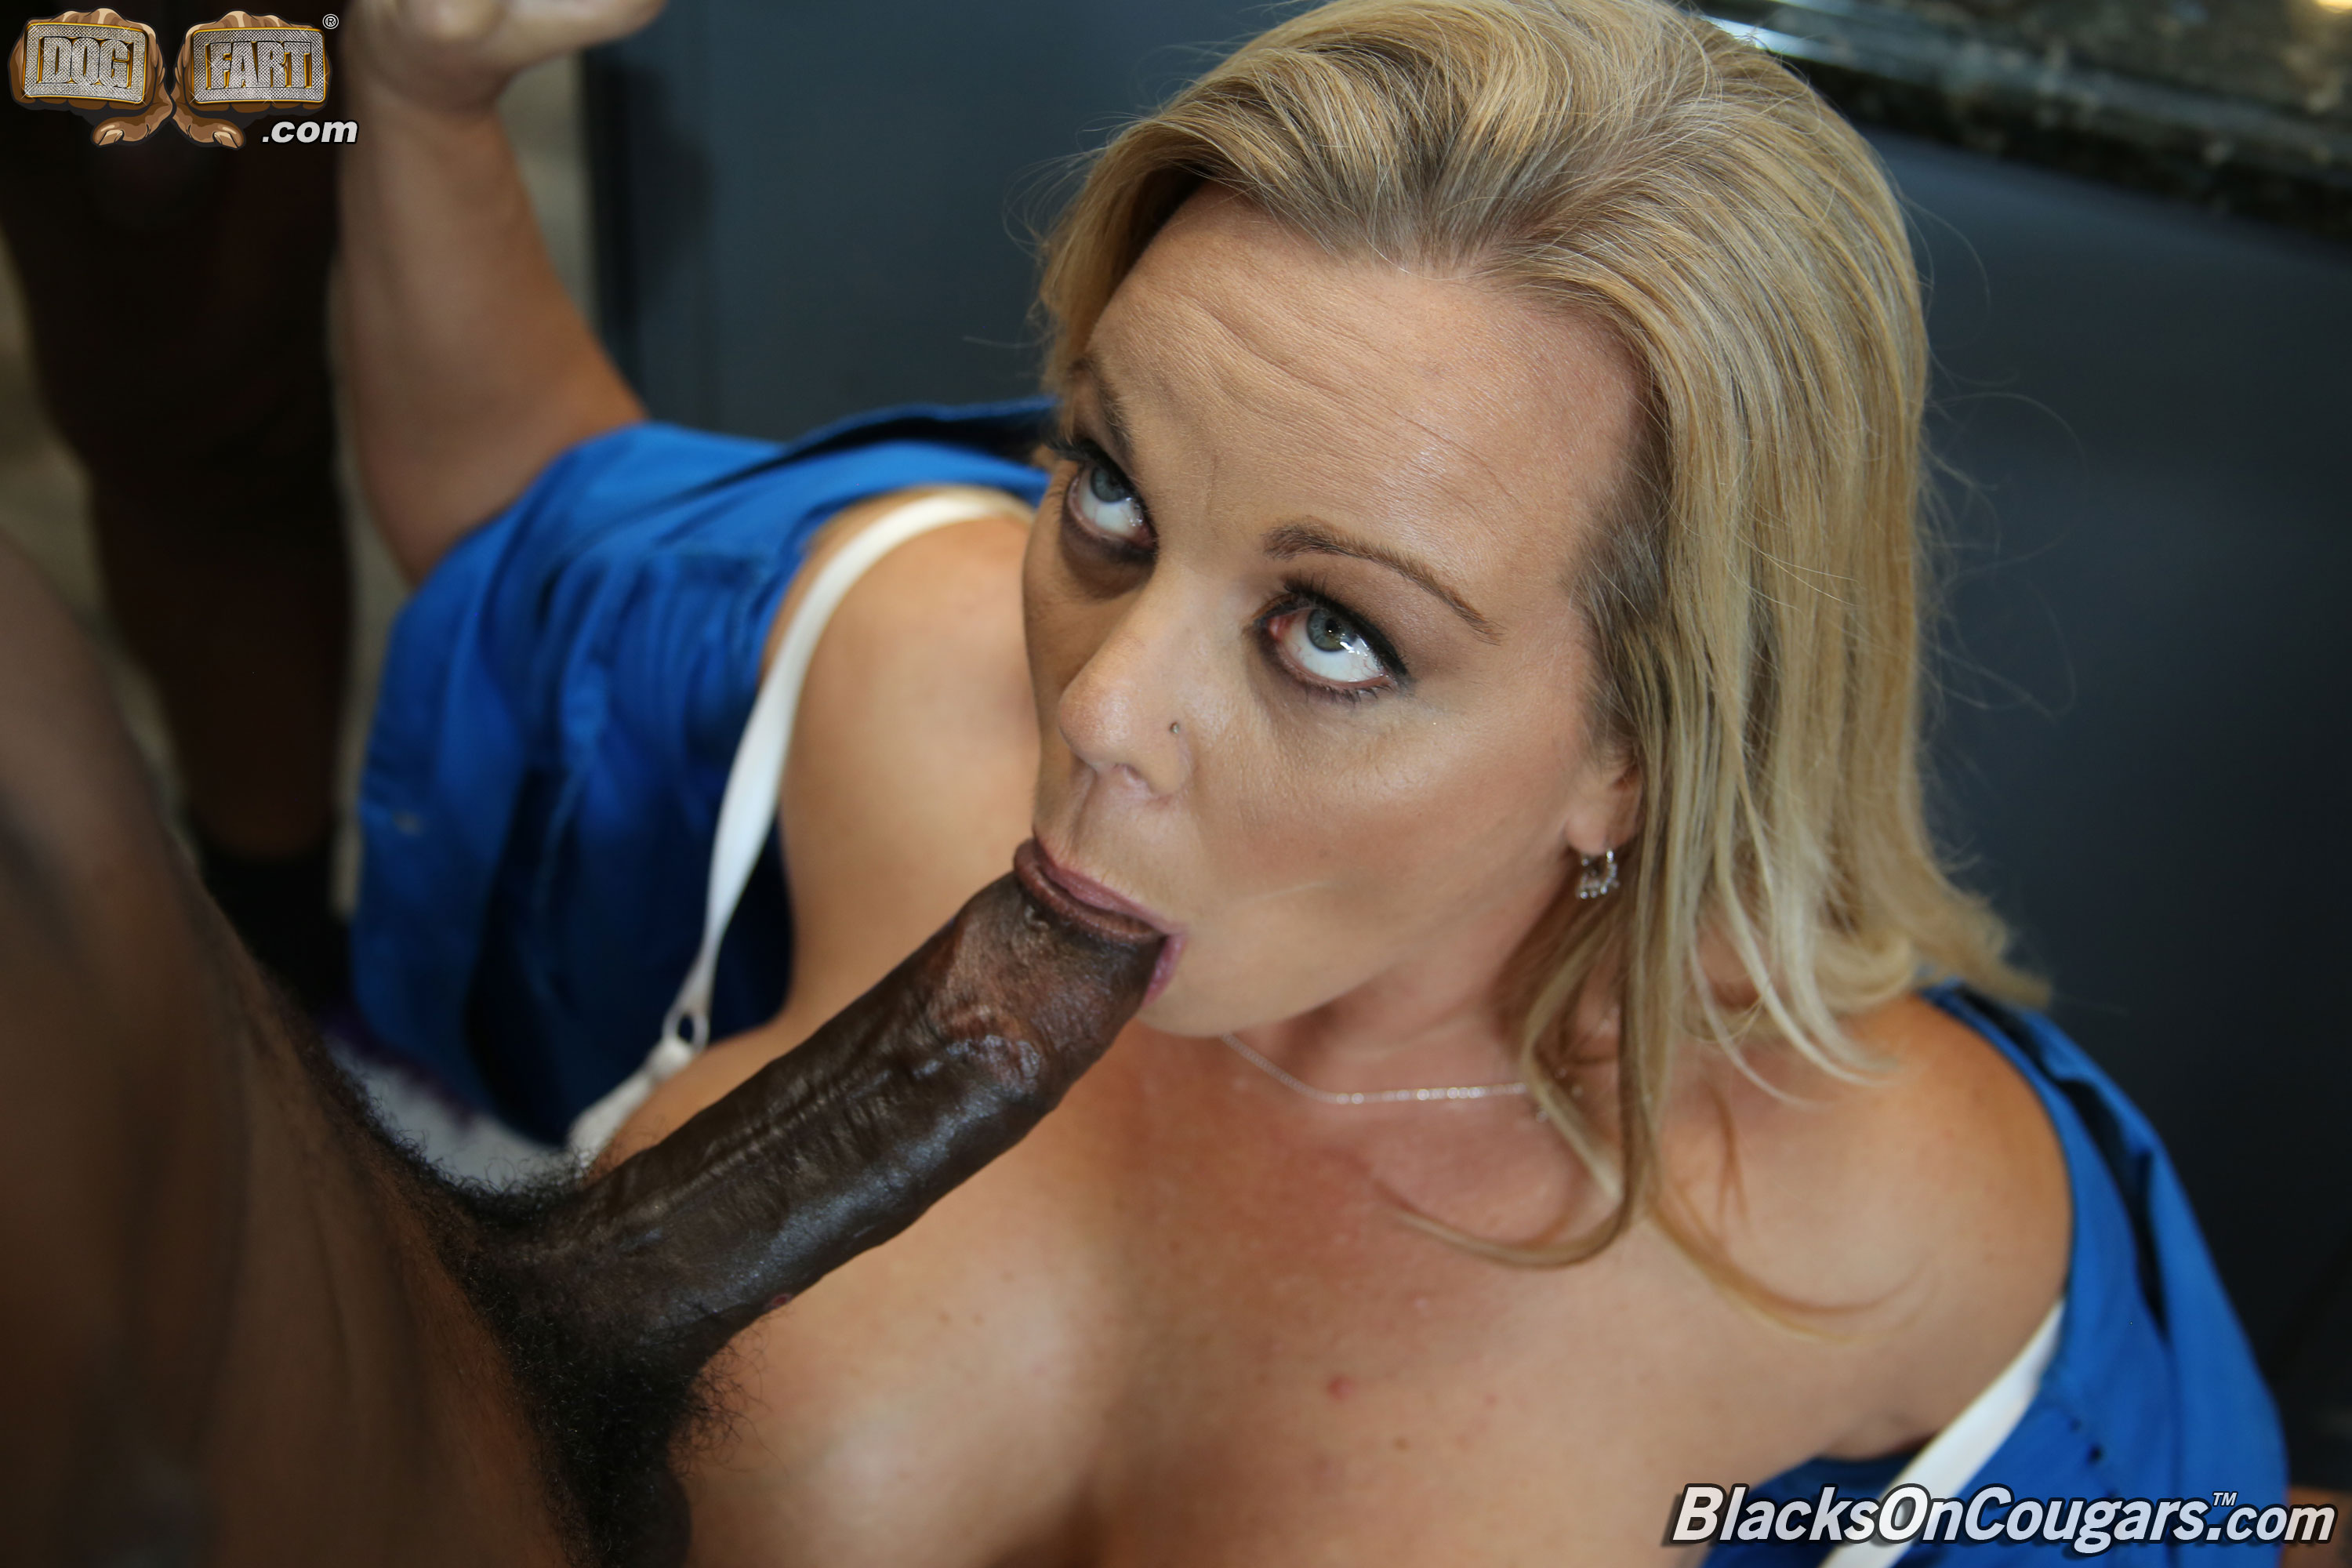 galleries blacksoncougars content amber lynn bach 2 pic 13